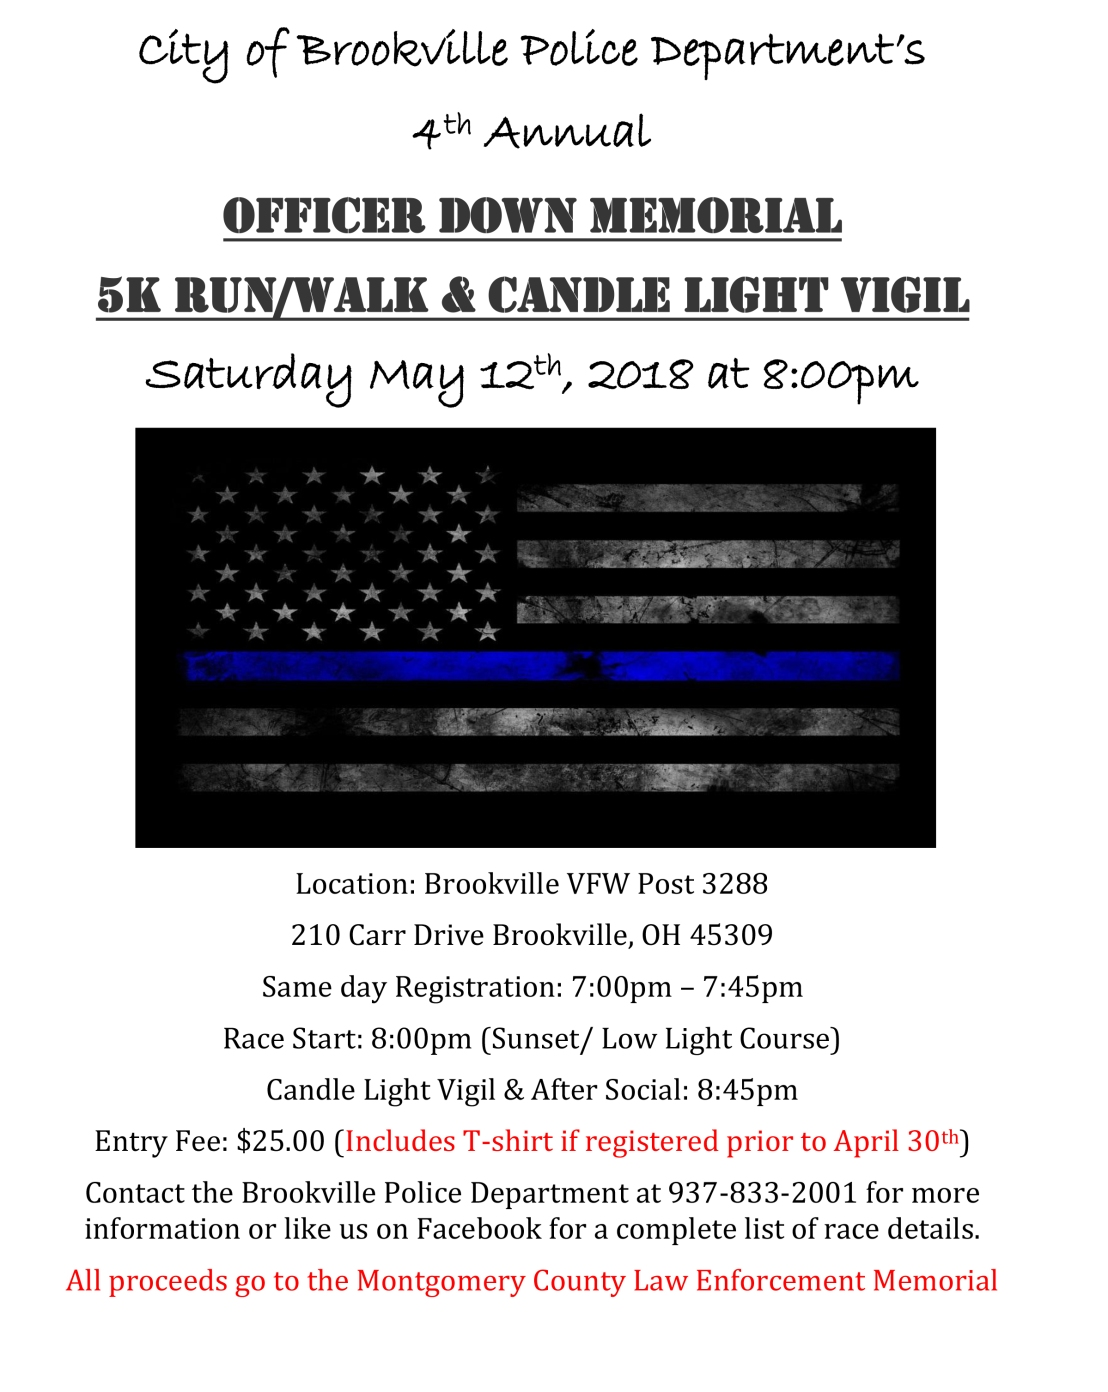 Brookville officer down flyer 2018 (3).jpg